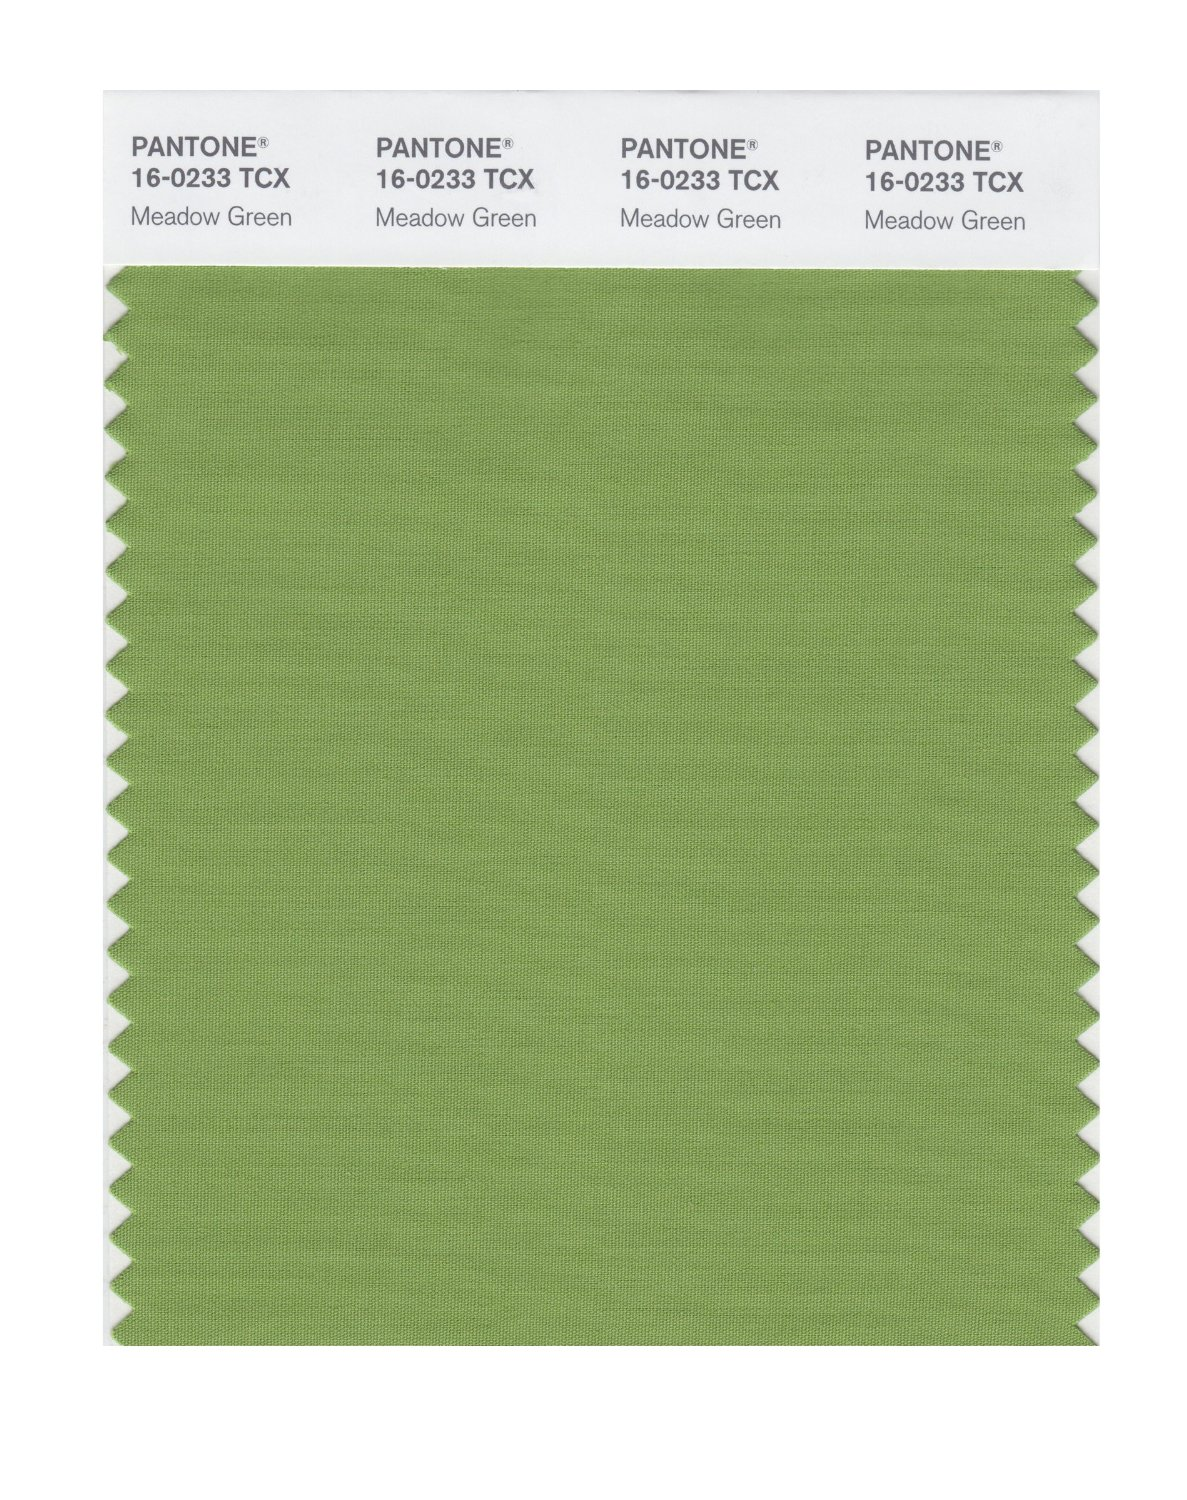 Pantone Smart Swatch 16-0233 Meadow Green